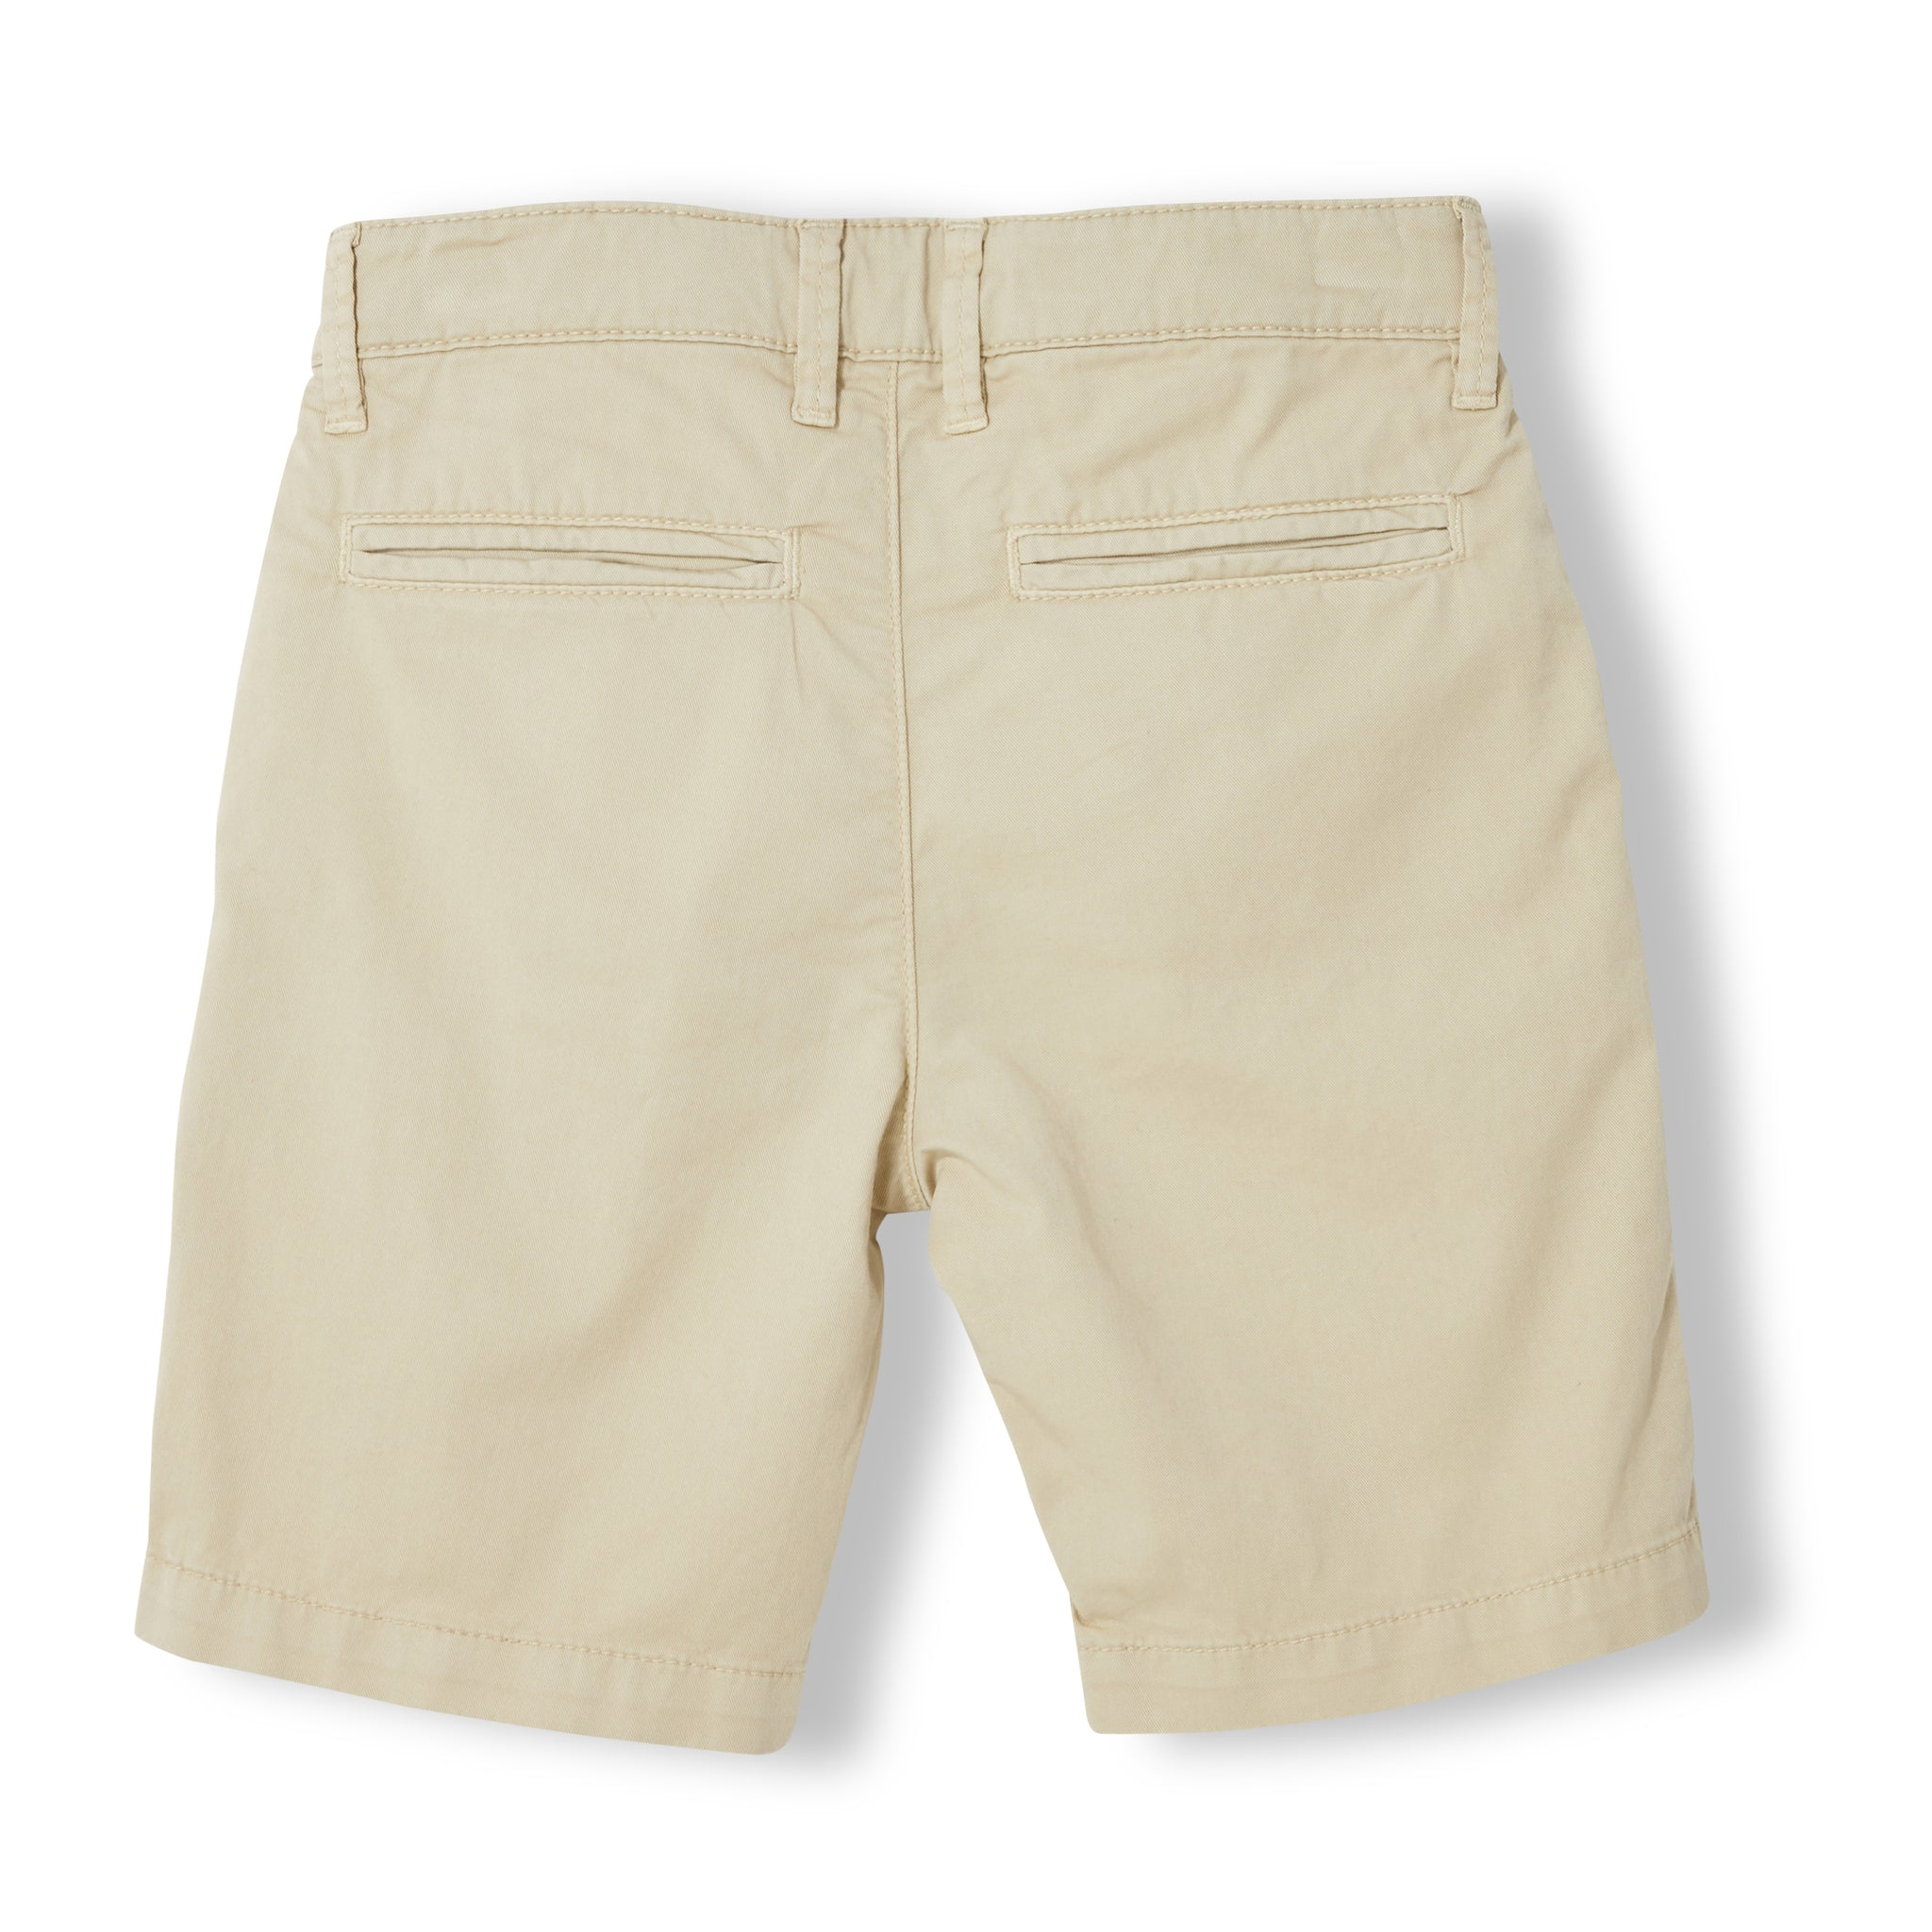 ALLEN Beige - Boy Woven Chino Fit Bermudas  Shorts 2